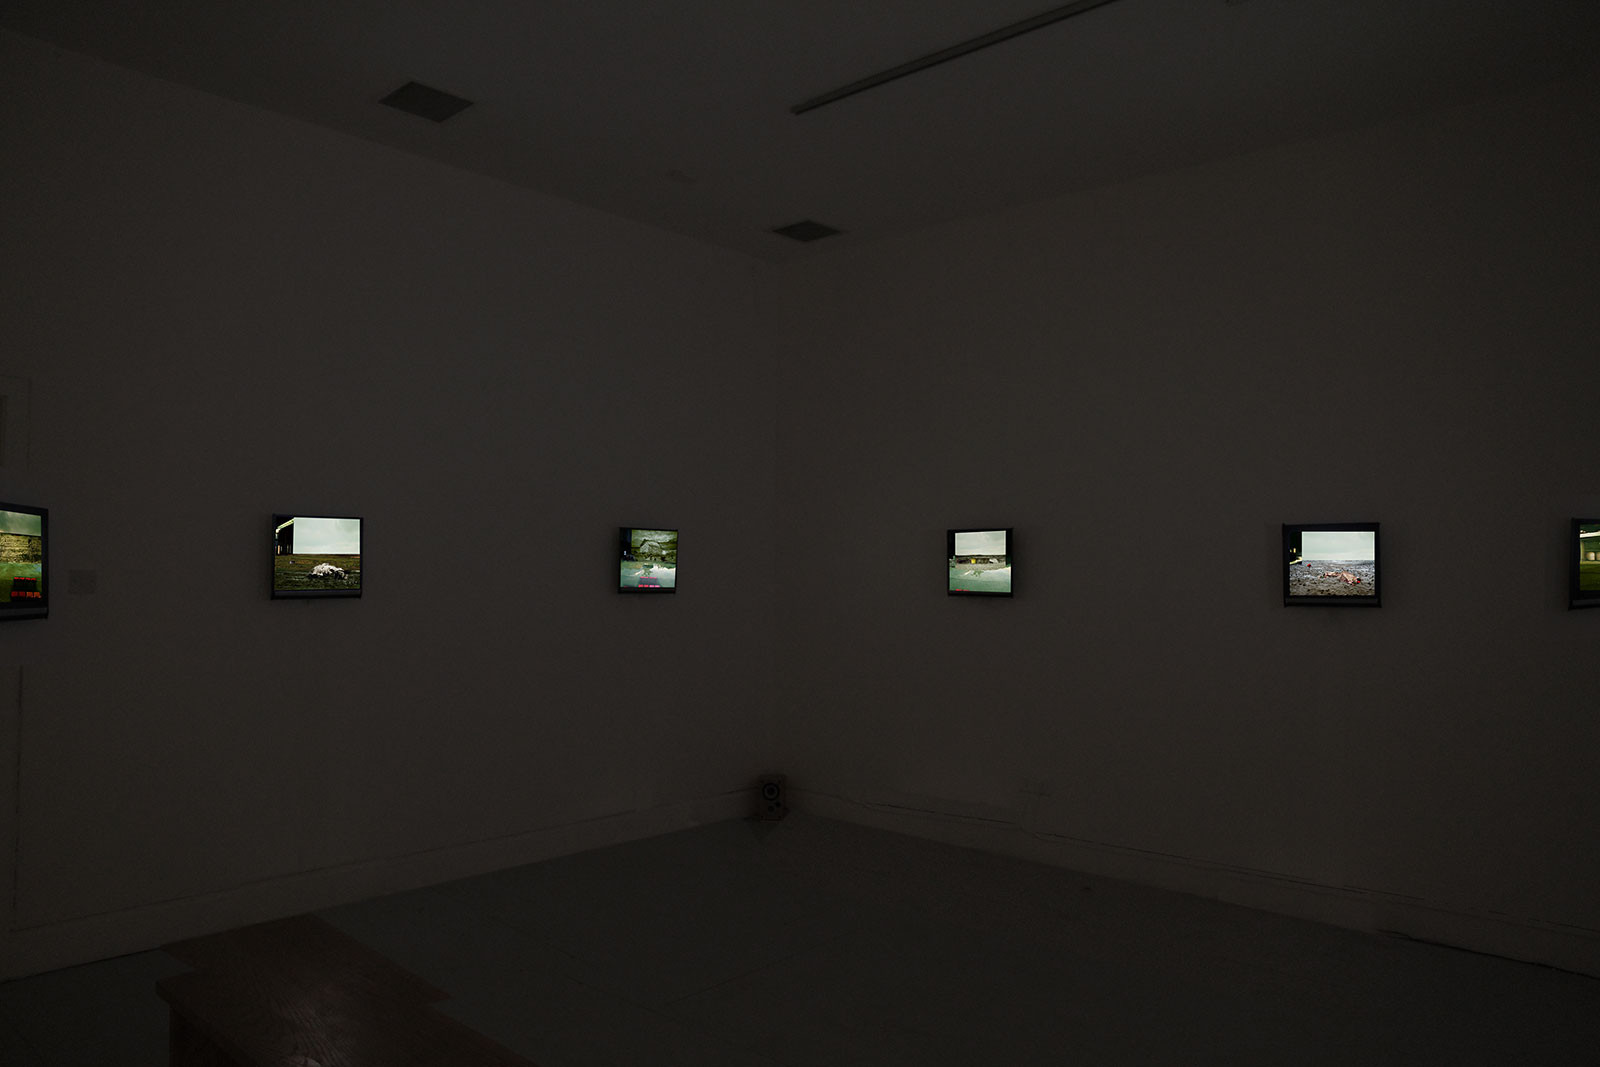 Exhibition view, Galway Arts Centre, 2010 (solo show).